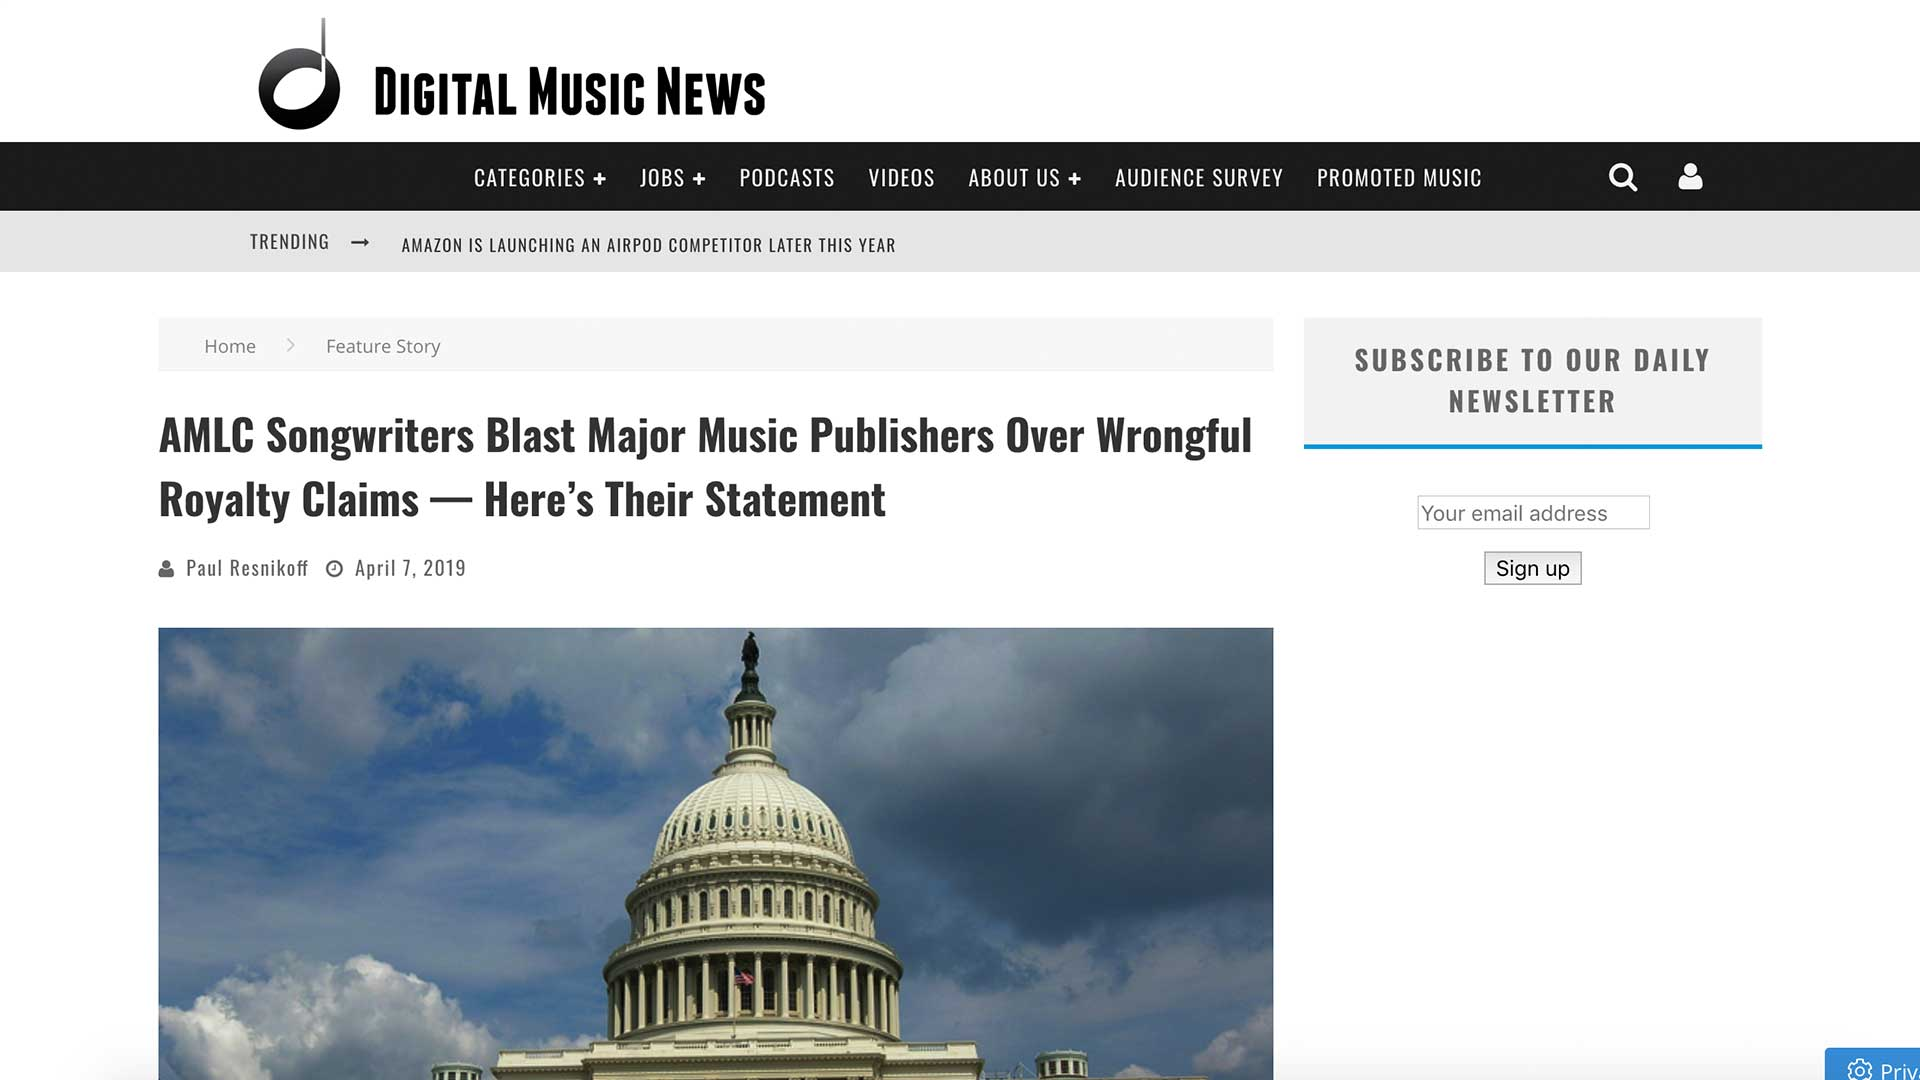 Fairness Rocks News AMLC Songwriters Blast Major Music Publishers Over Wrongful Royalty Claims — Here's Their Statement